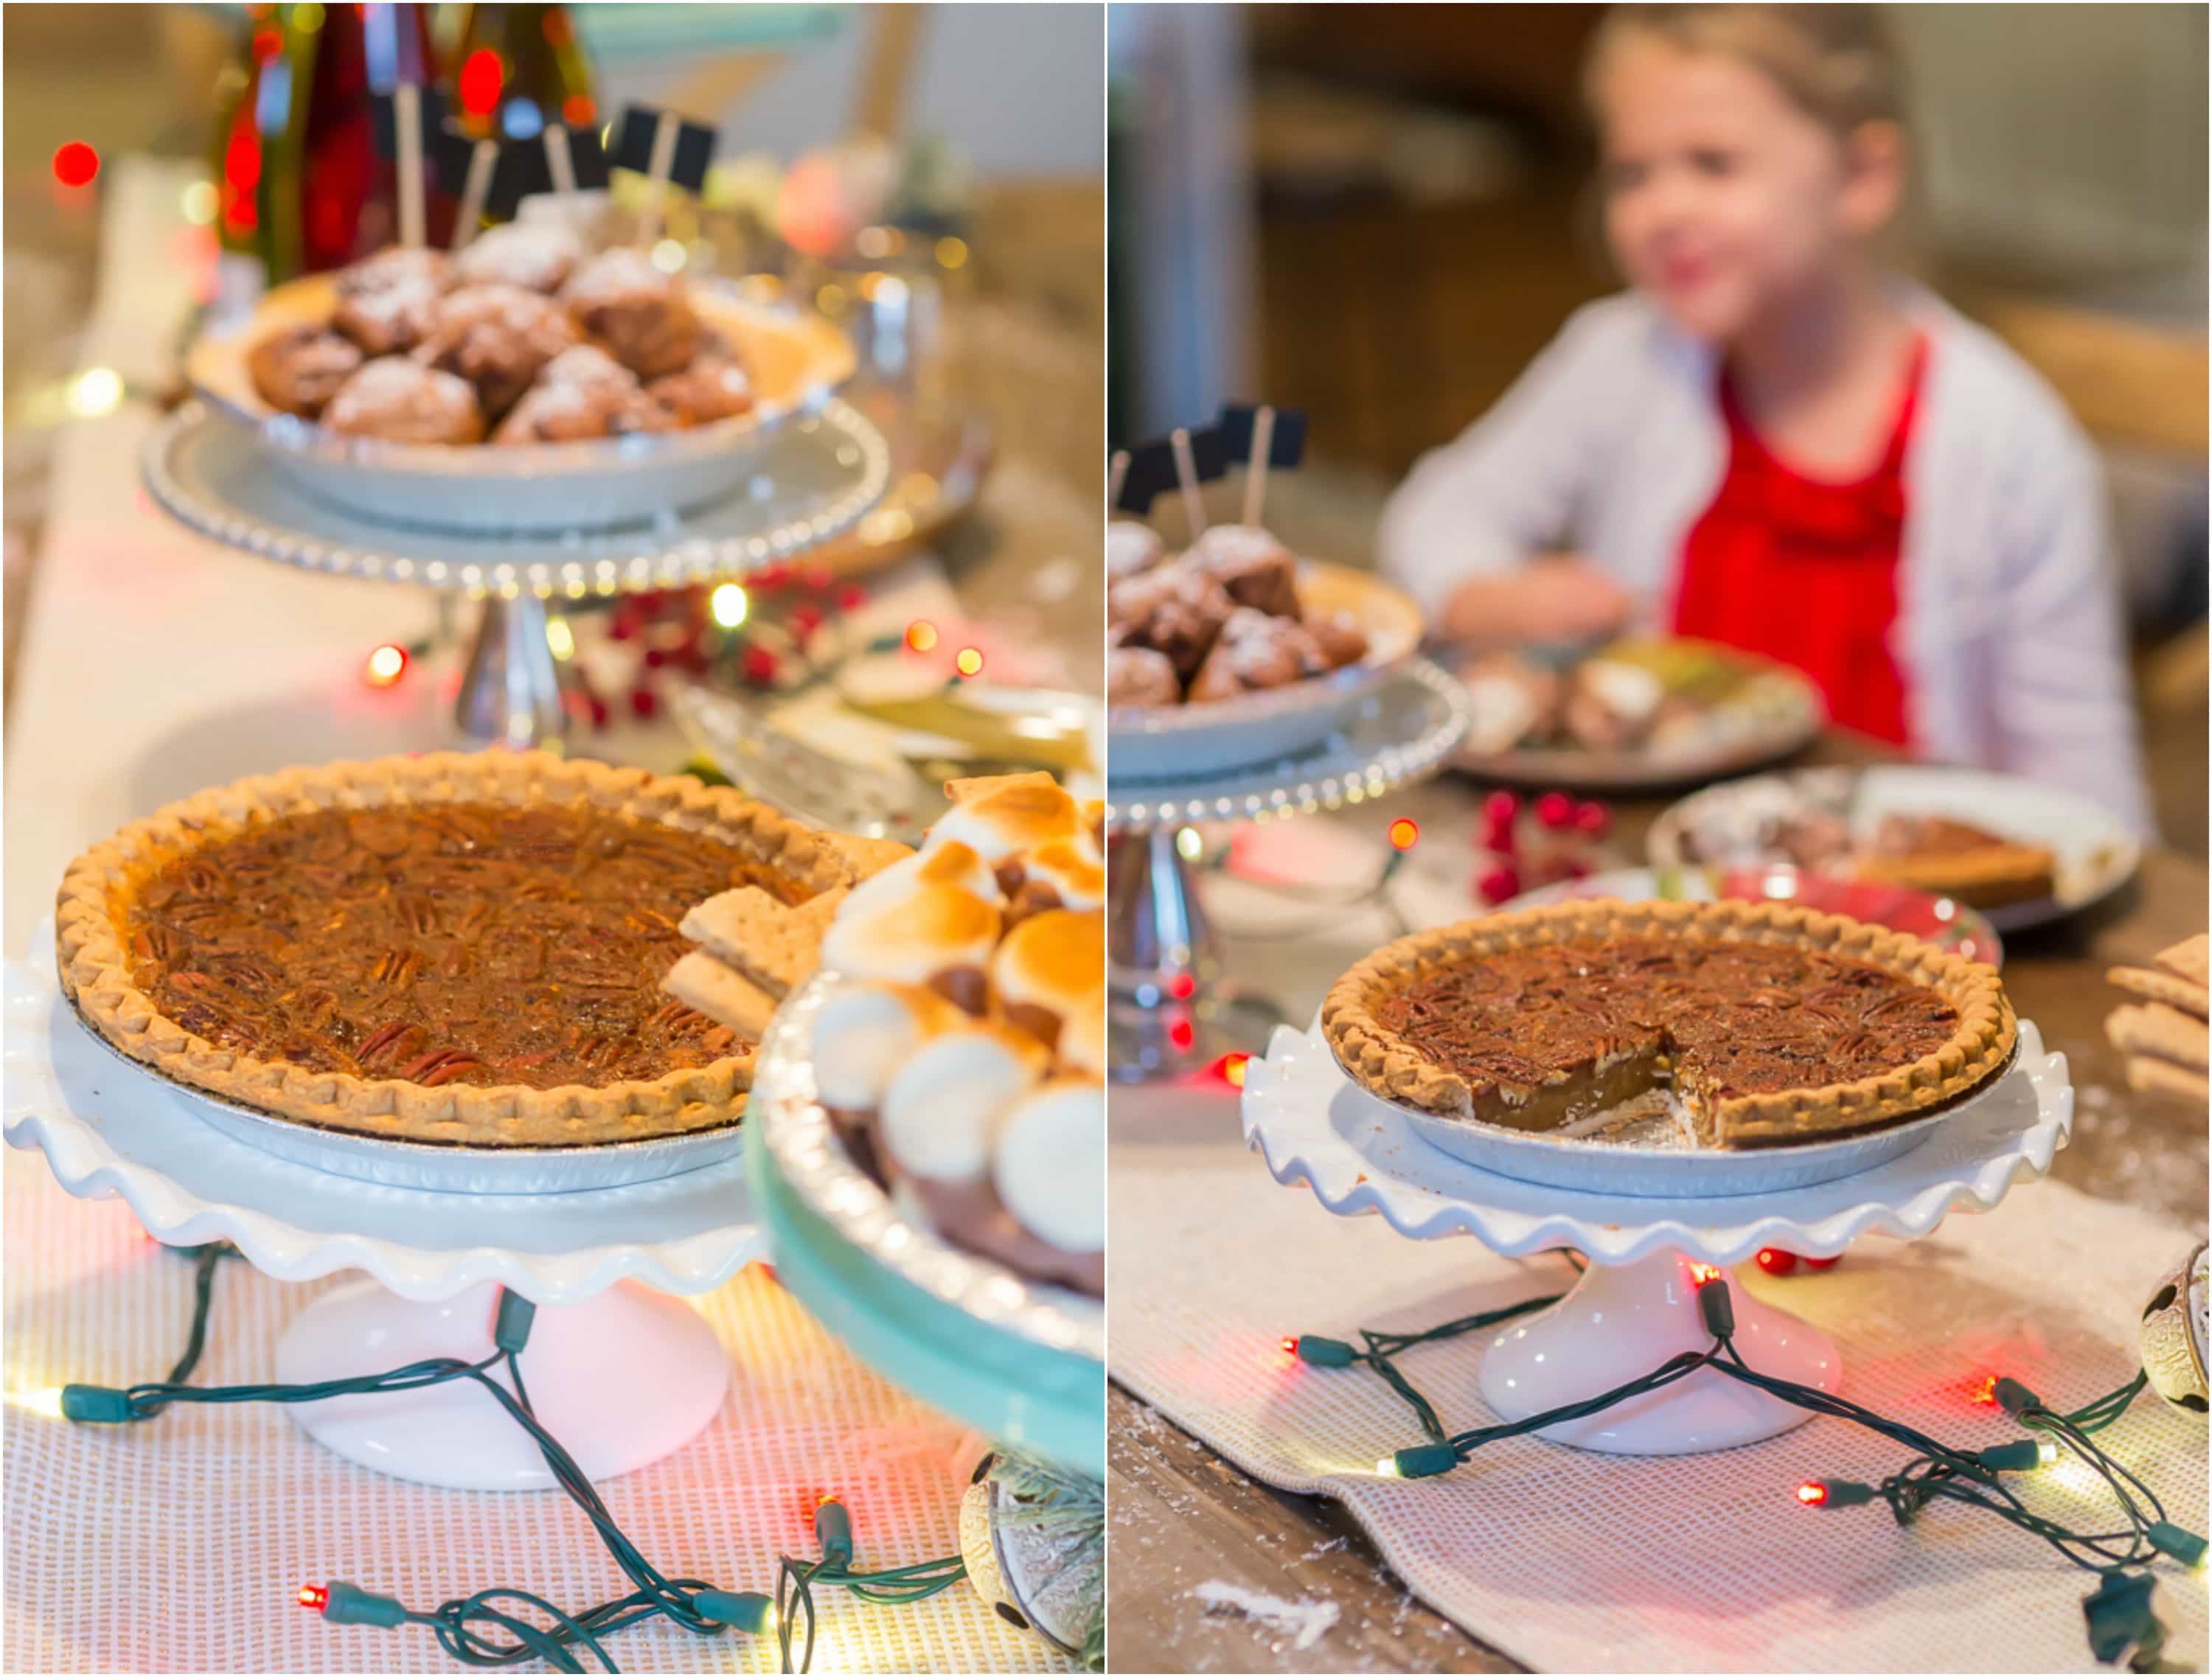 photo collage of Edward's pecan pie being served at a holiday pie party